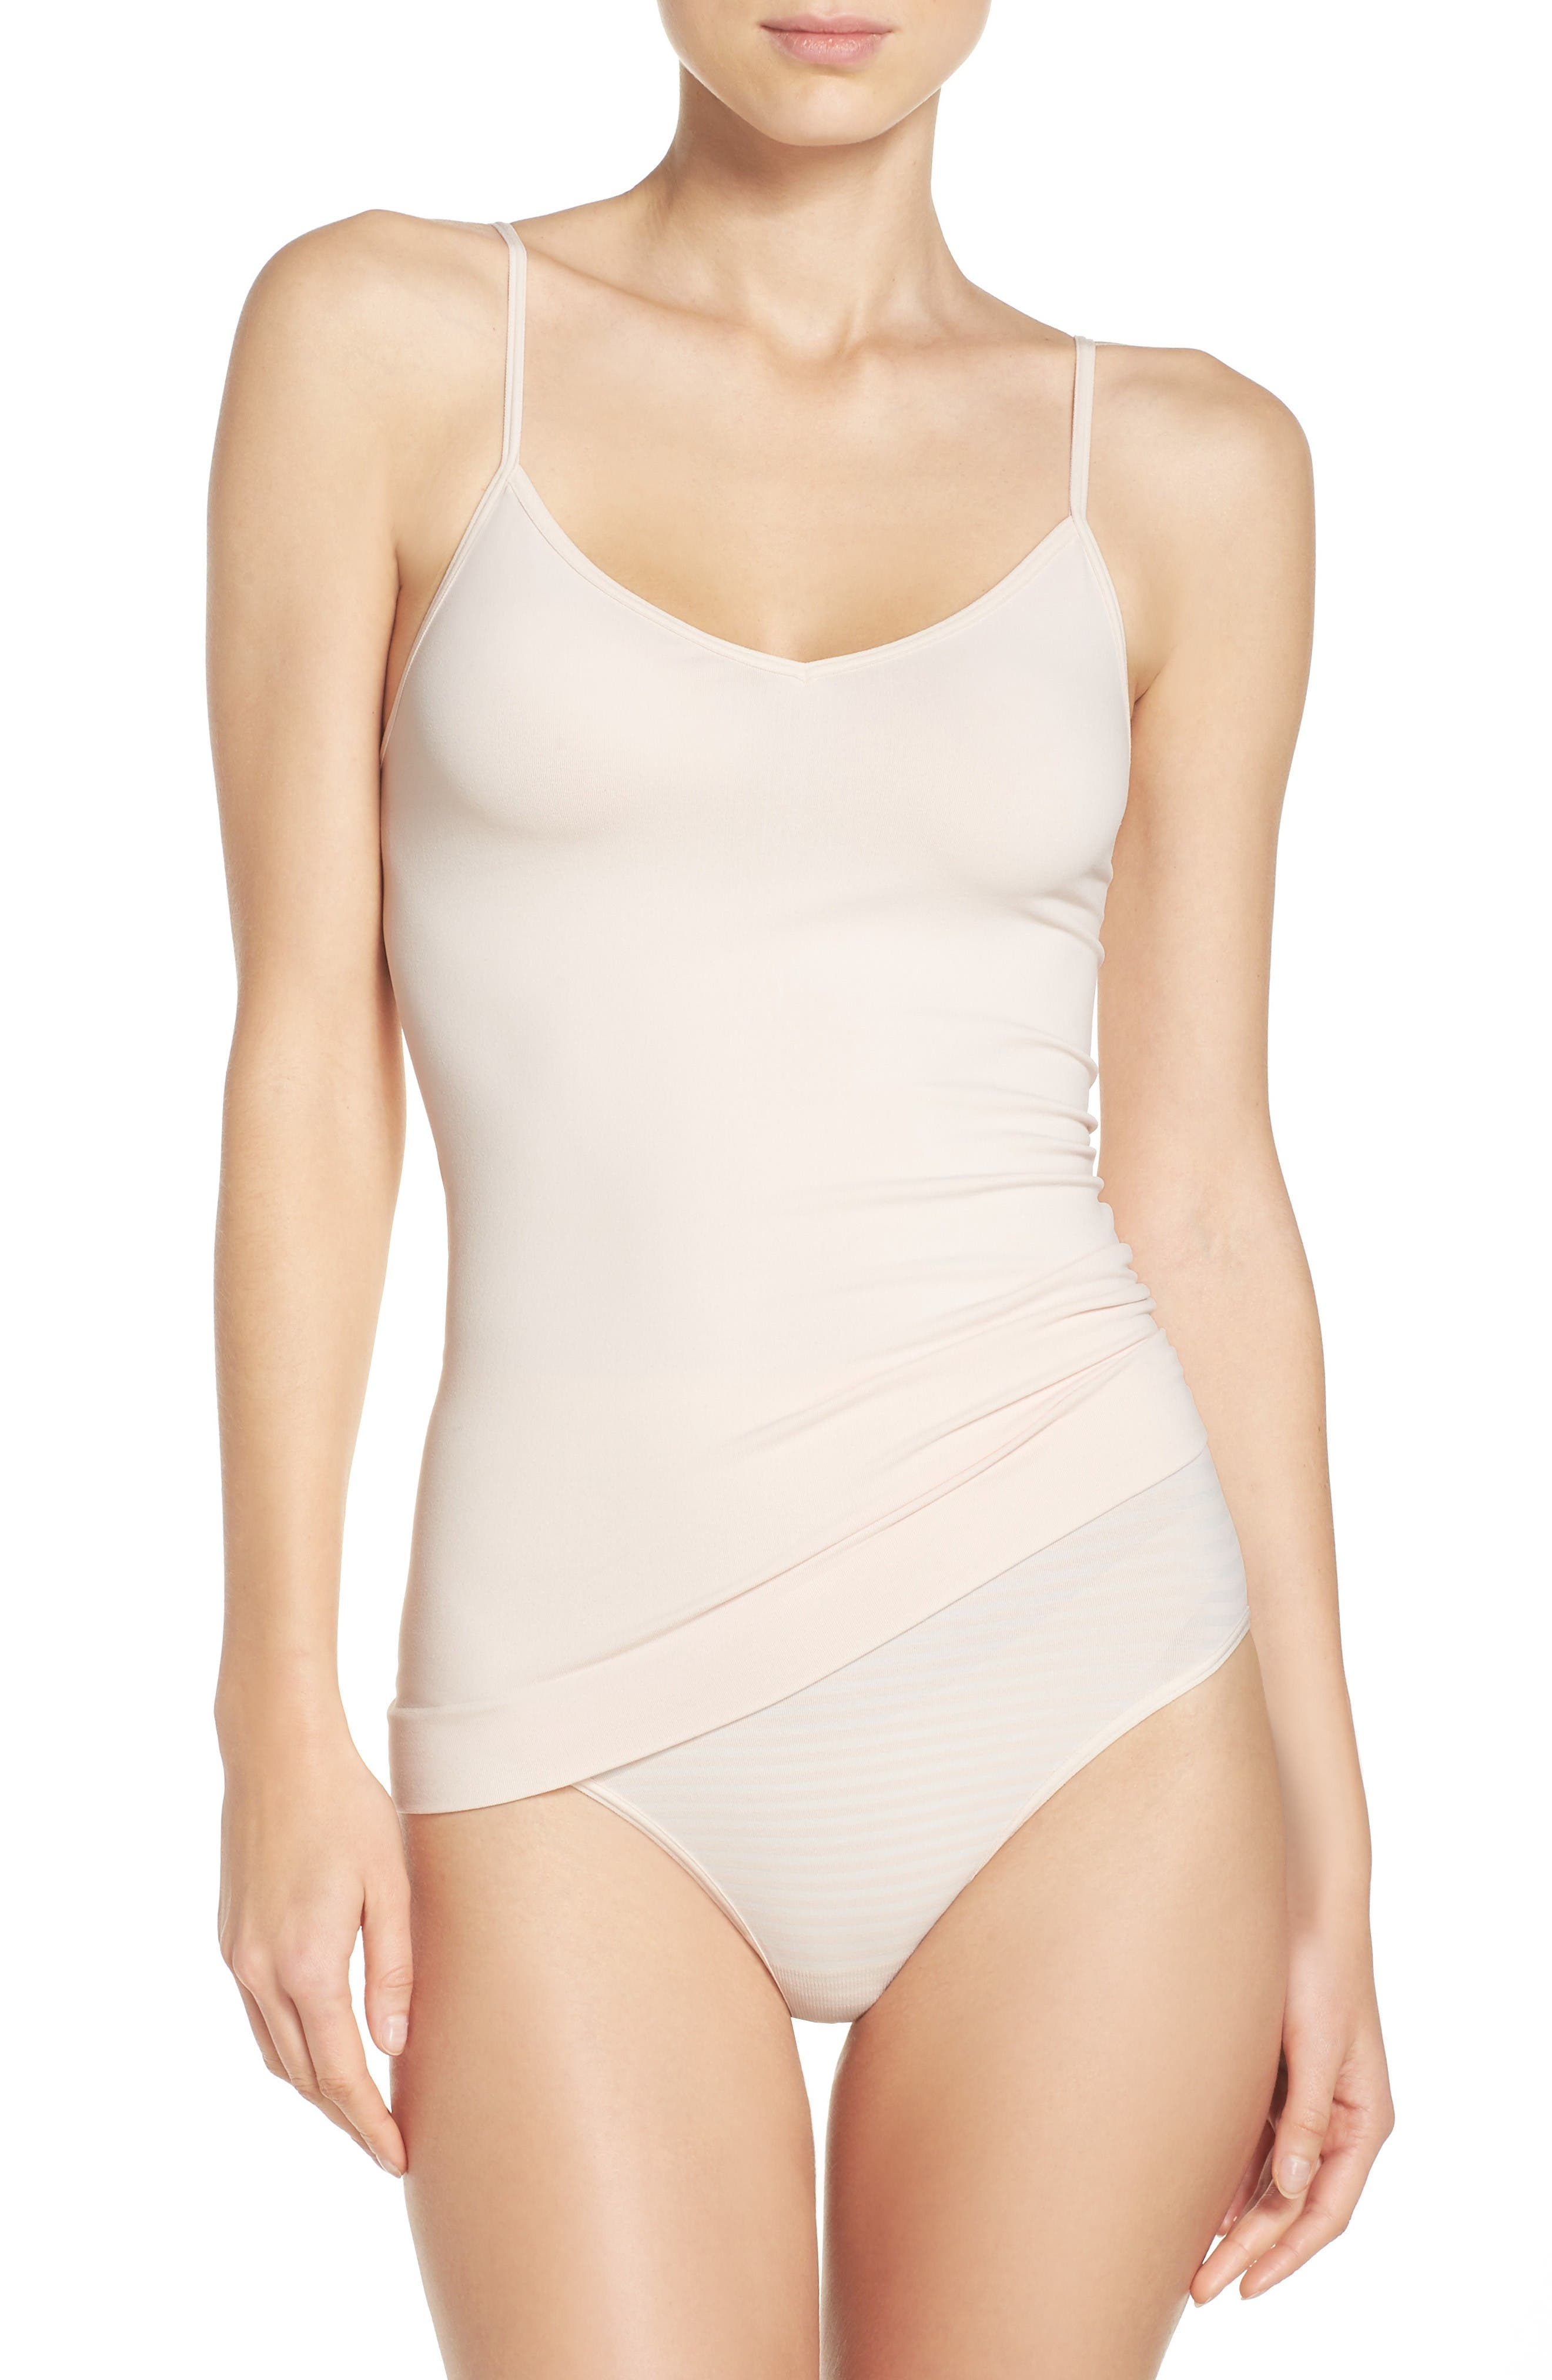 Nordstrom Two-Way Seamless Camisole & Full Briefs